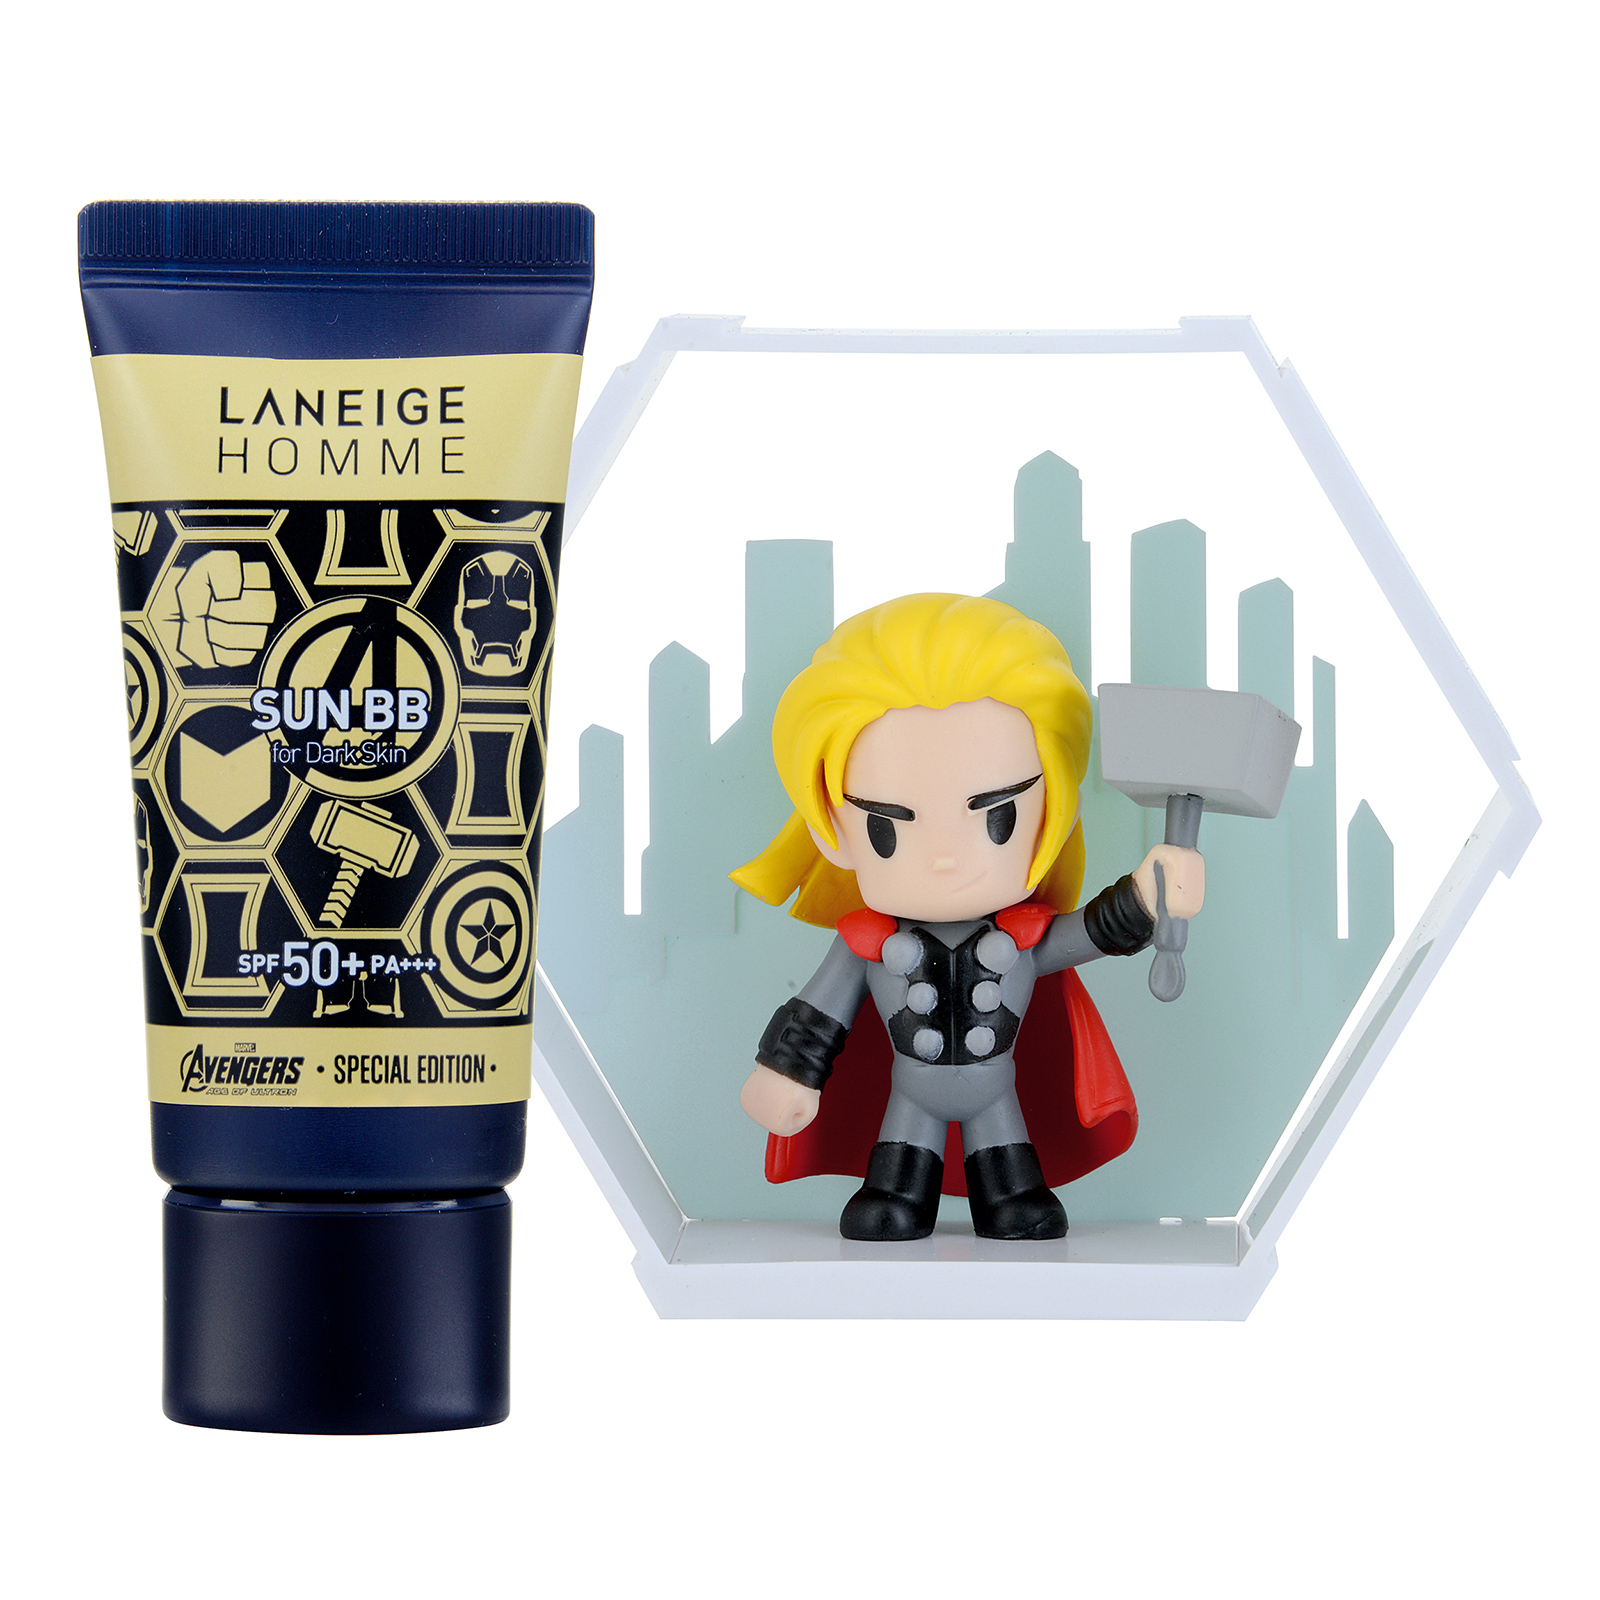 Laneige Homme Homme Sun BB SPF50+ / PA+++ Set with Thor Figure (For Dark Skin) 1set, 2pcs